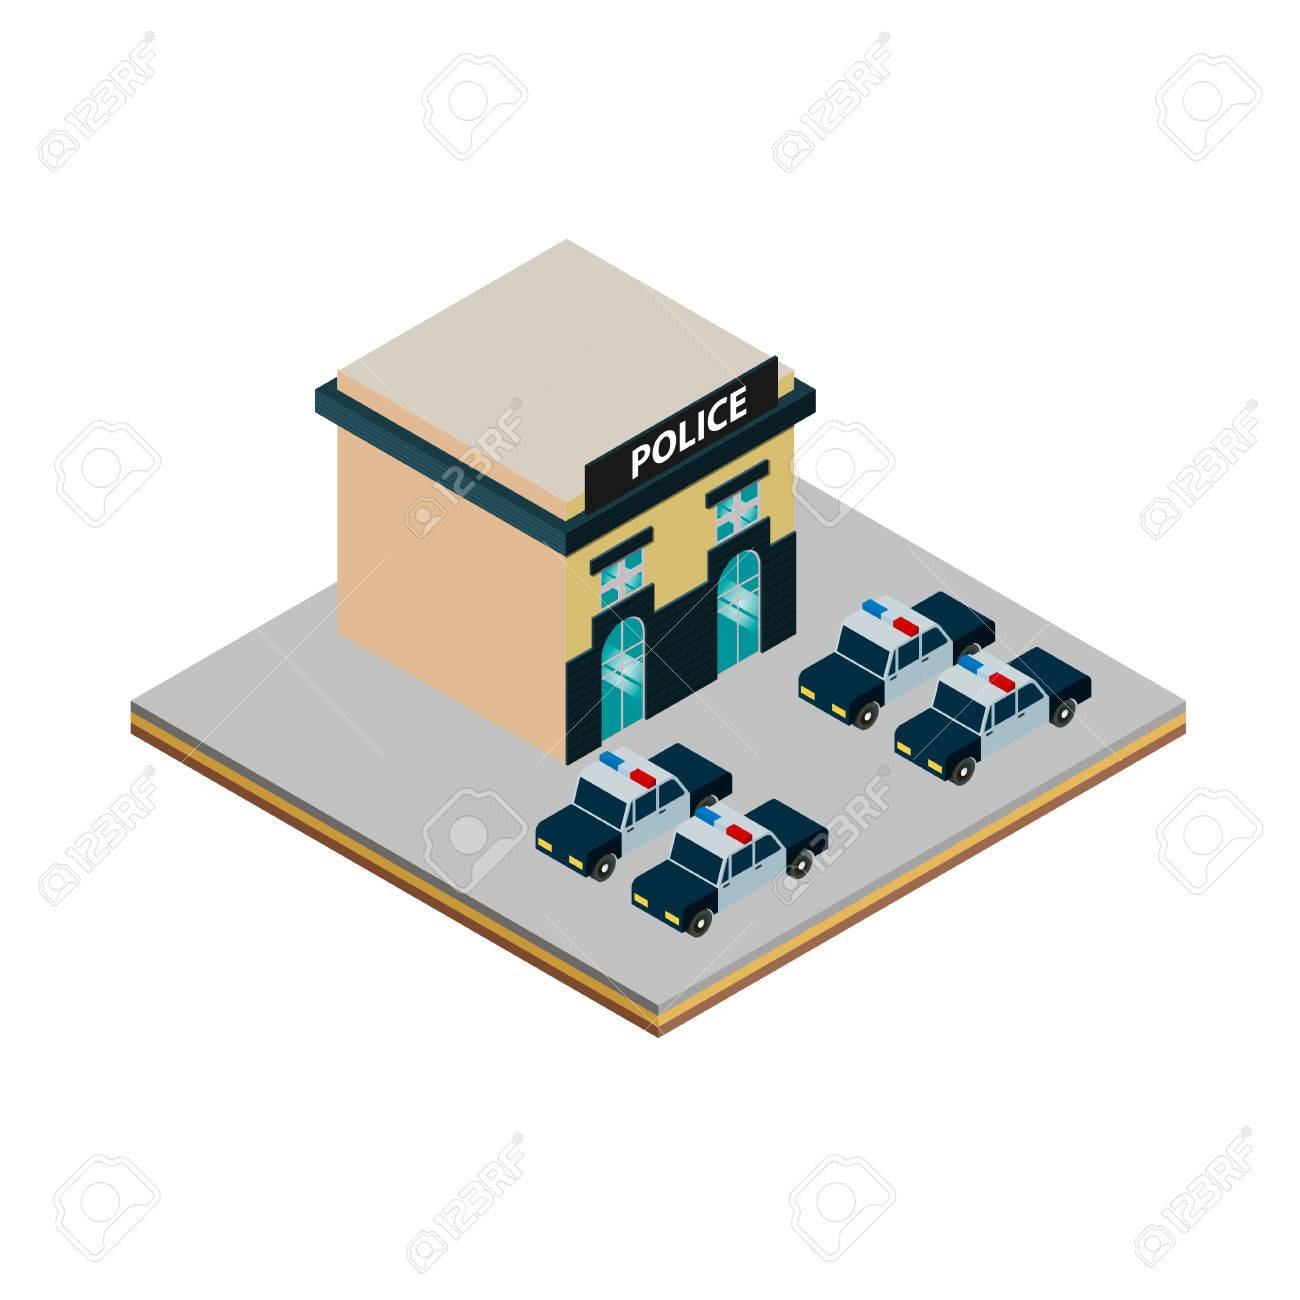 1300x1300 Isometric Police Station Icon With Police Cars Illustration